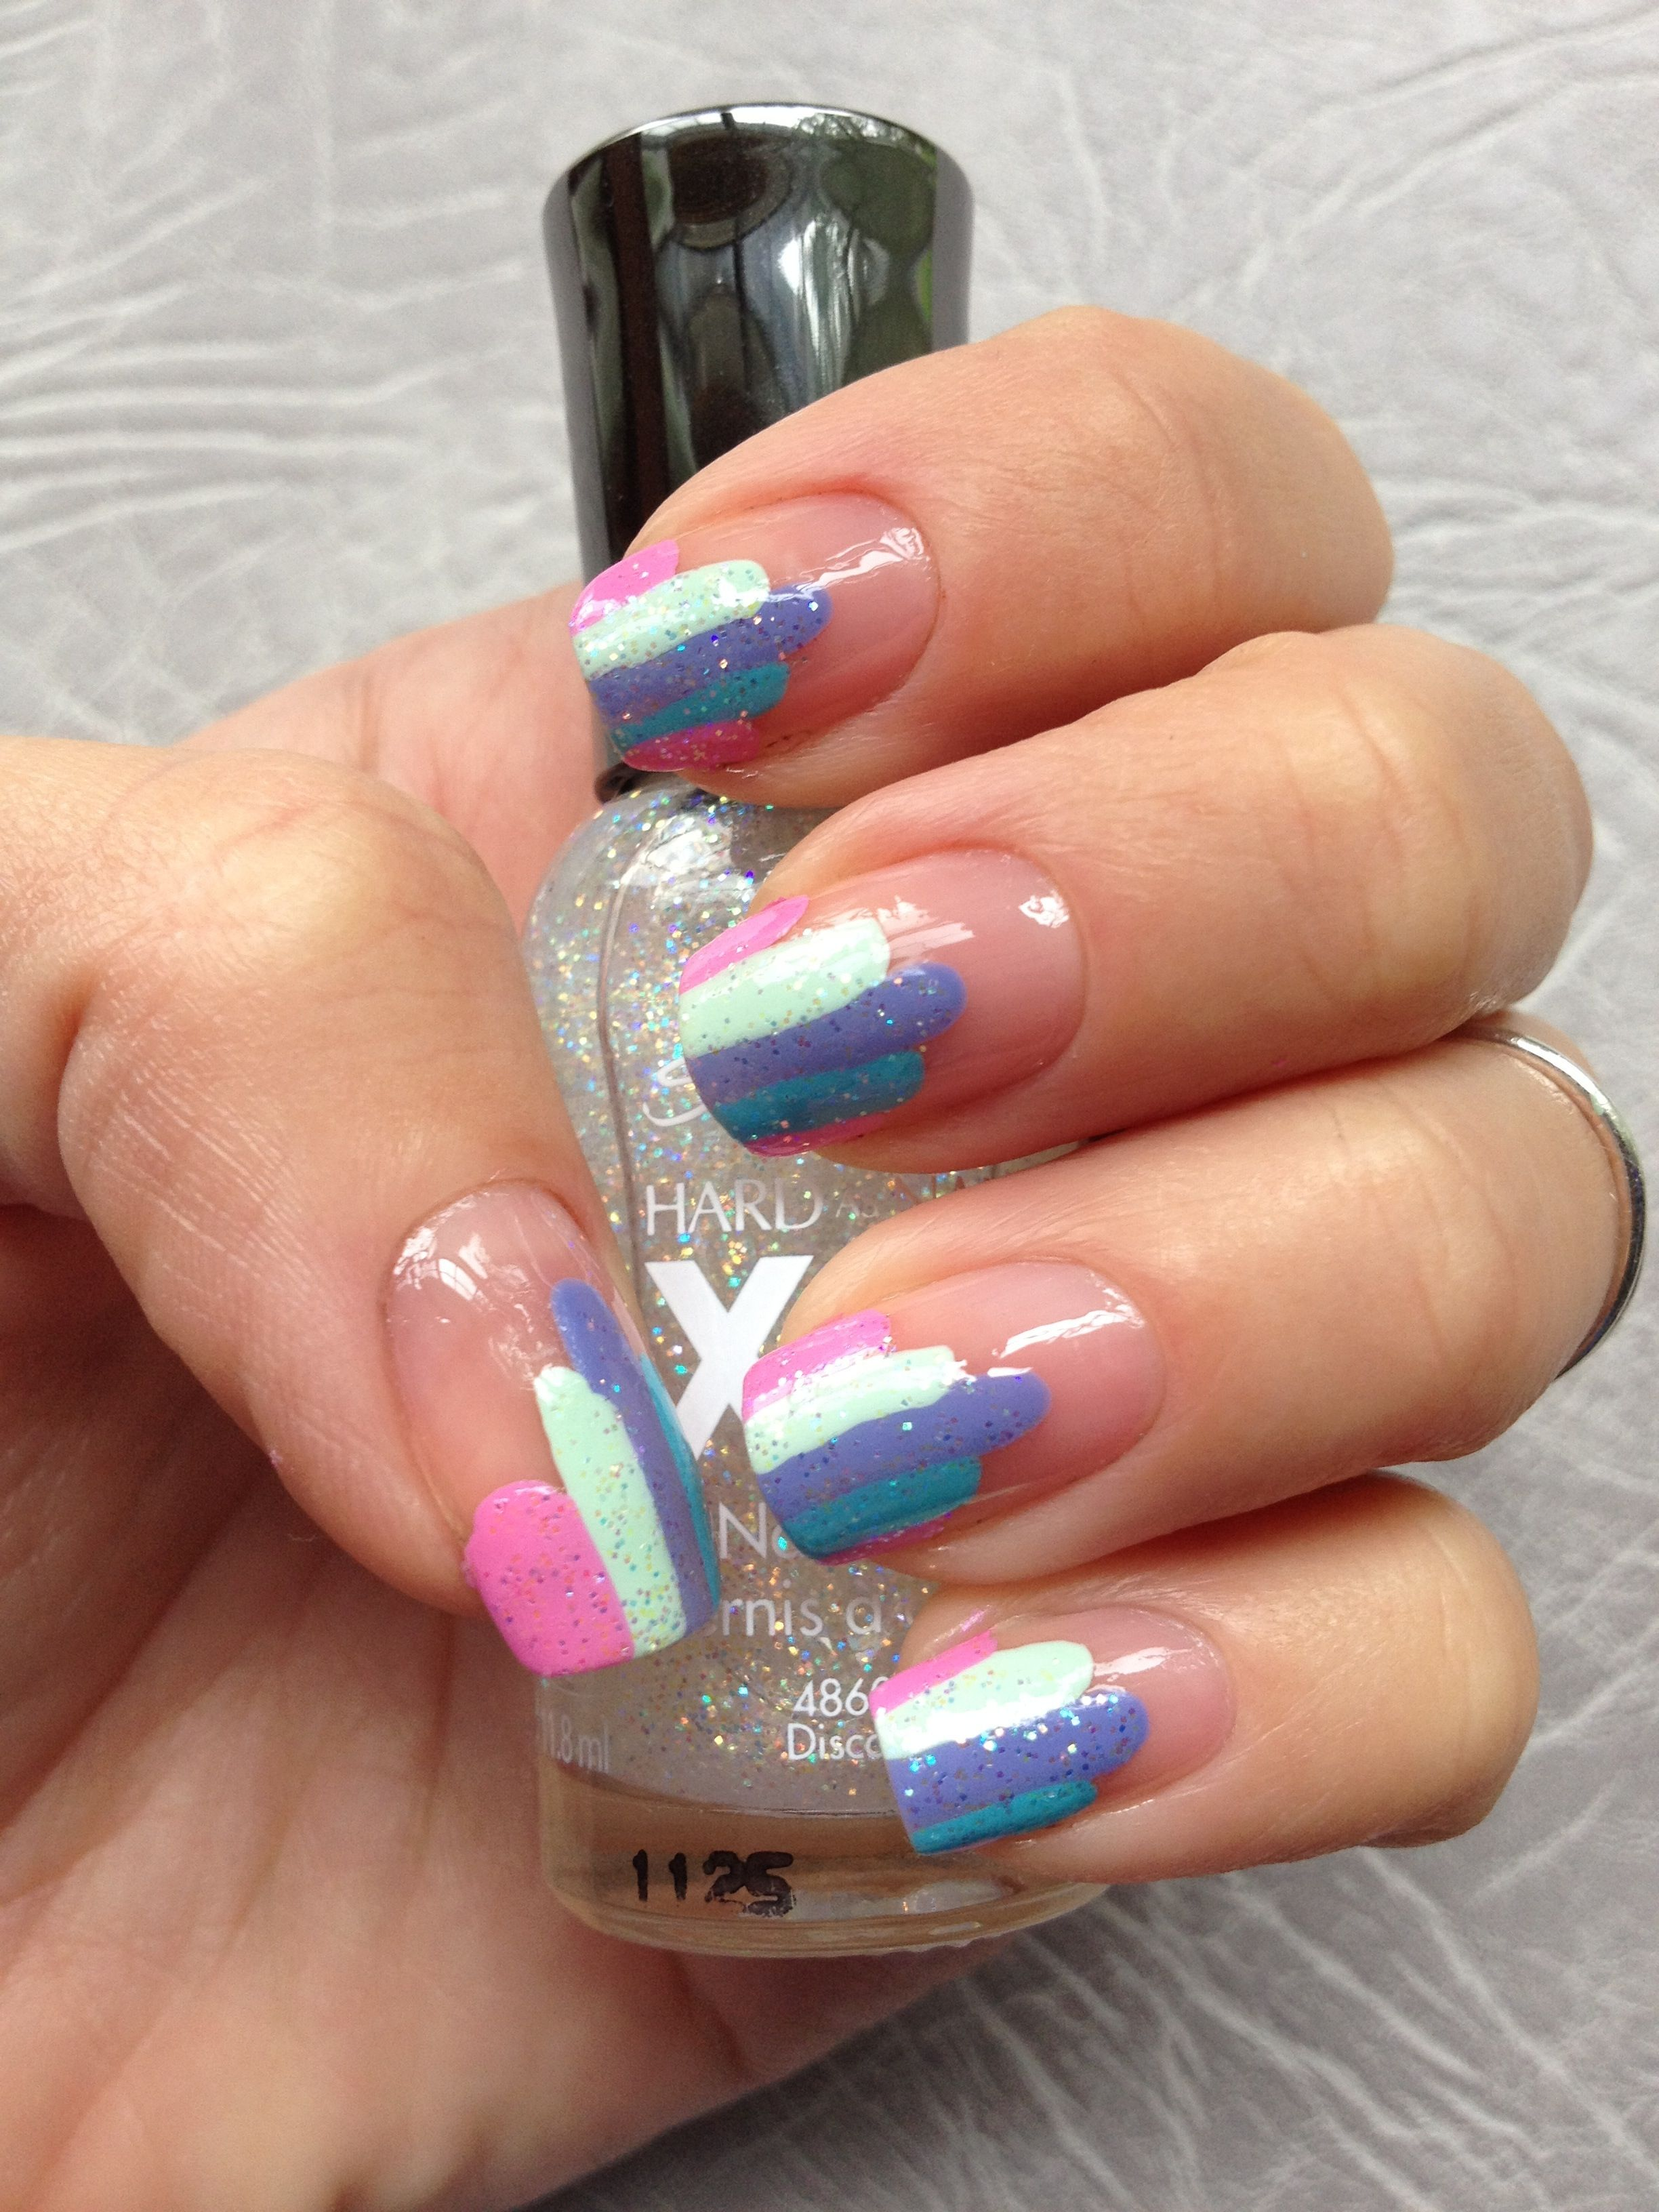 Sparlky Stripped Nail Art My Nail Designs Pinterest Stripped